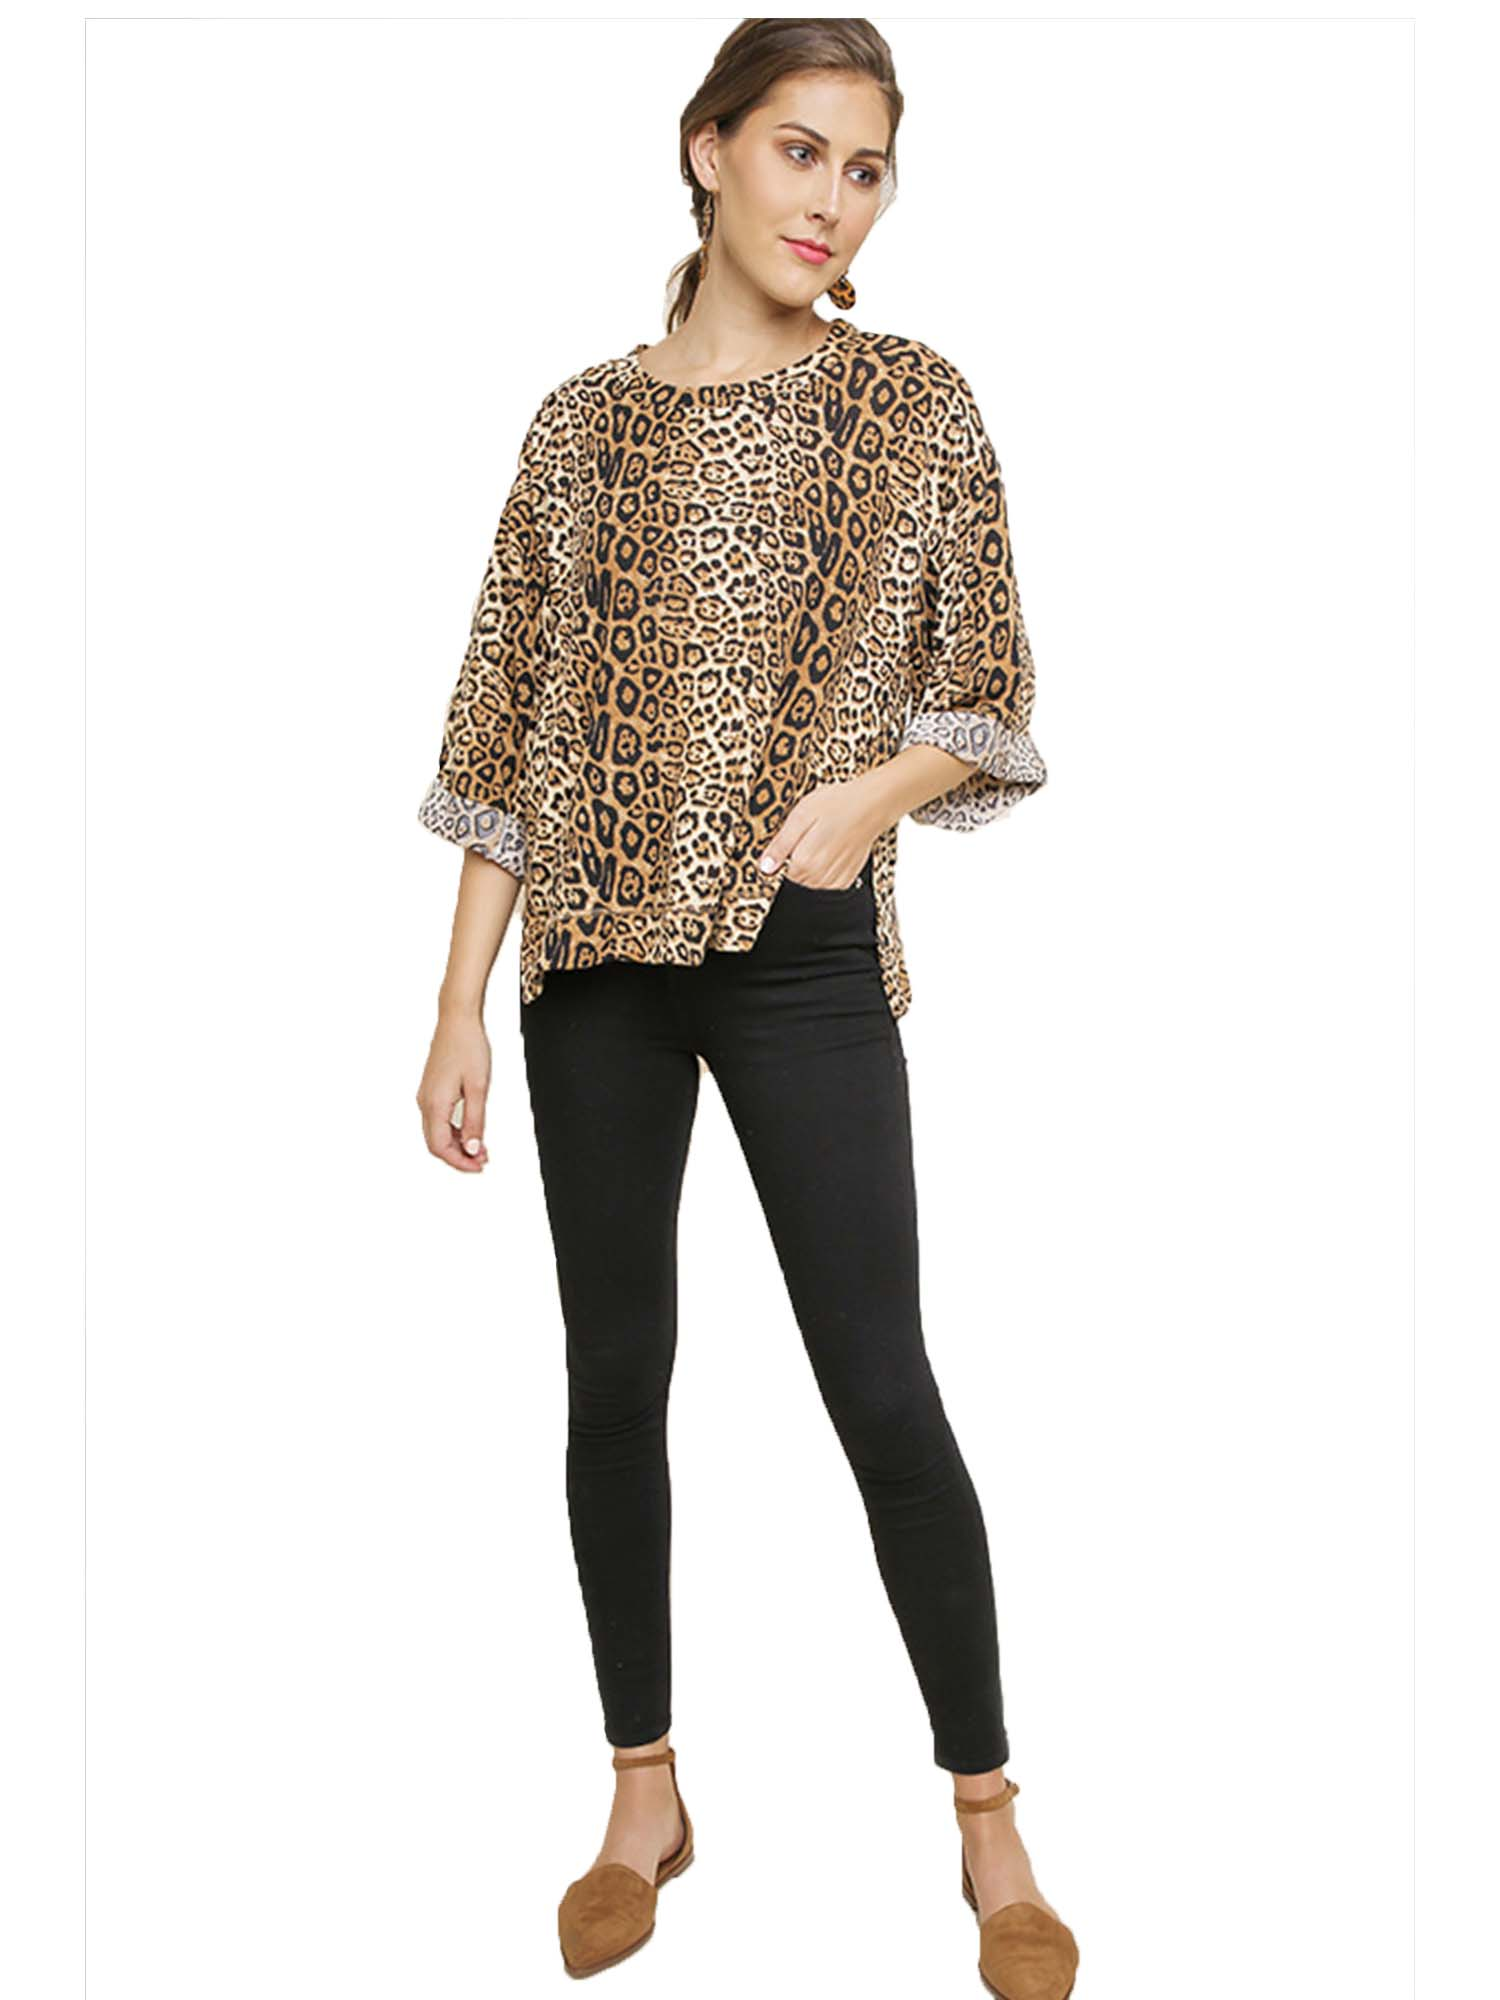 Camel Jaguar Print Cuffed Sleeve Top with Side Slits